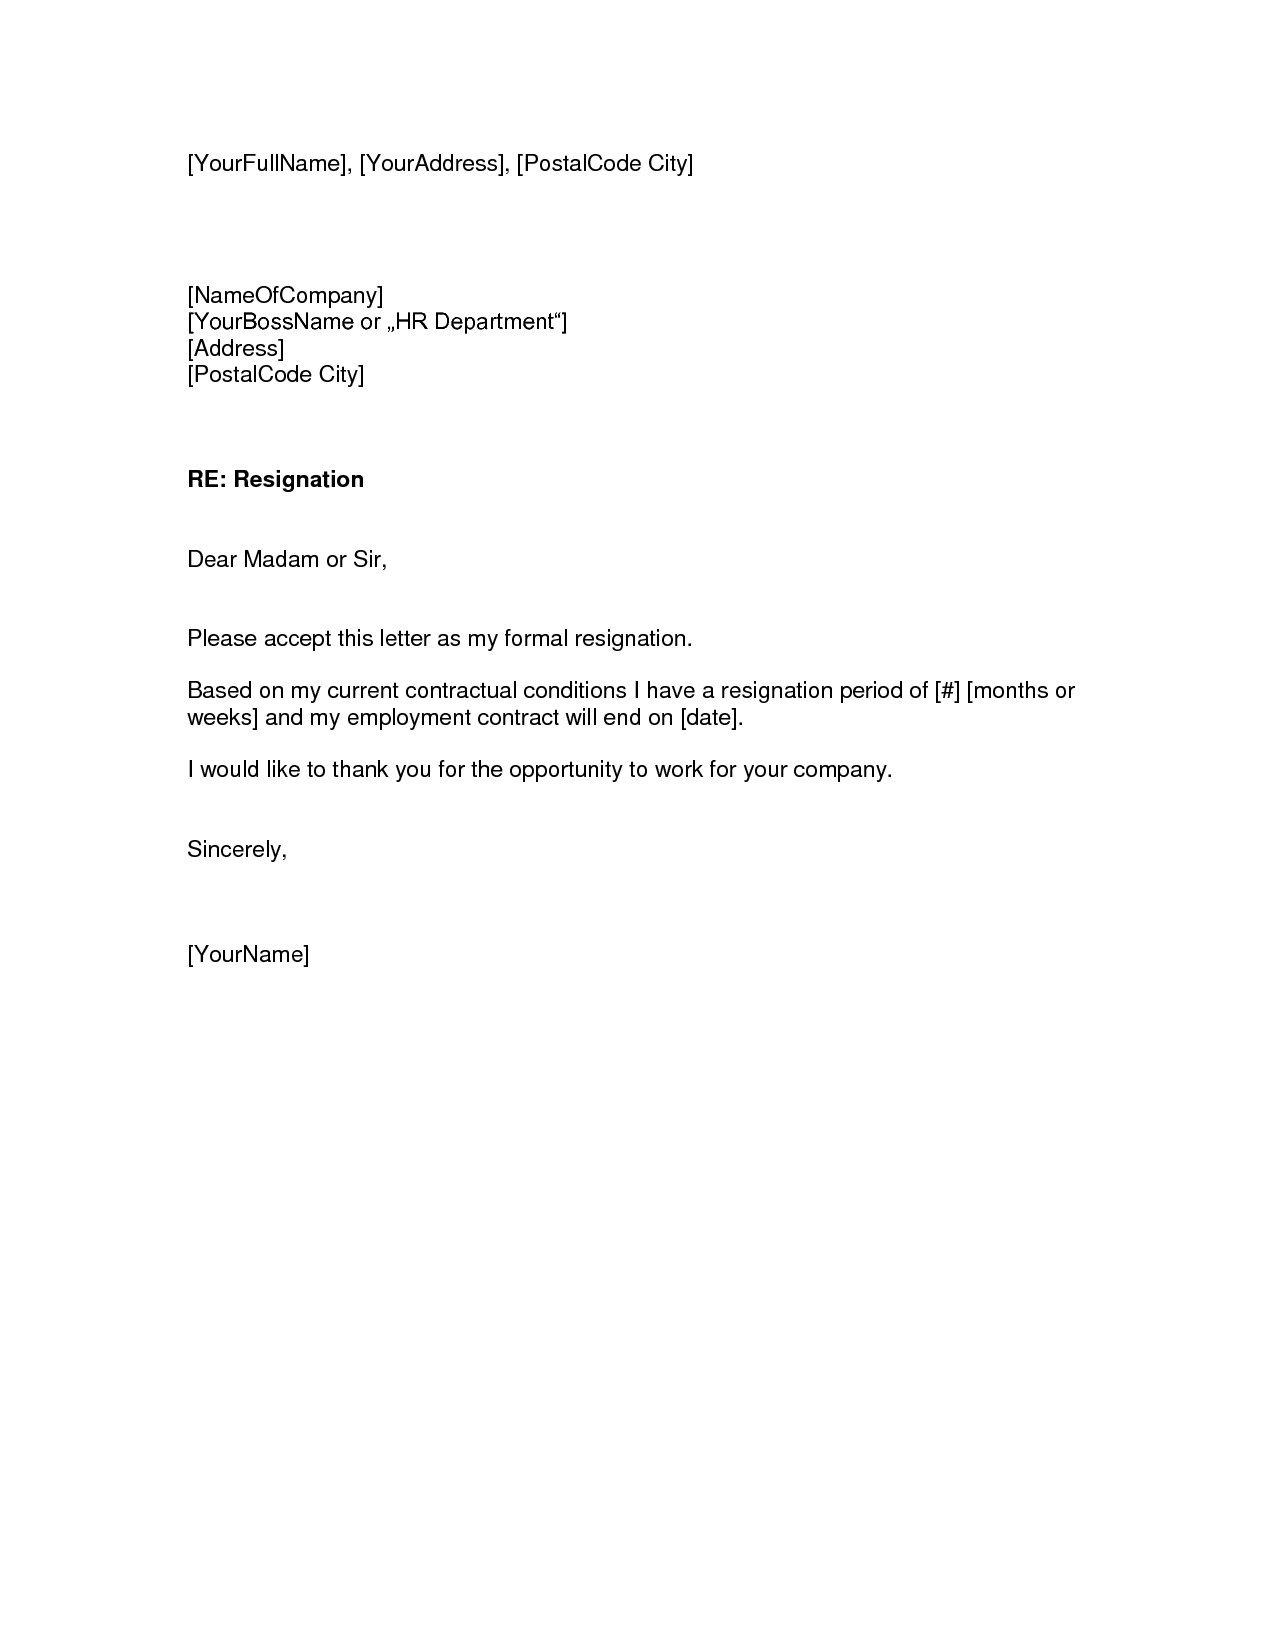 Sample resignation letter gresremmyvolunteer letter template sample resignation letter gresremmyvolunteer letter template application letter sample altavistaventures Gallery